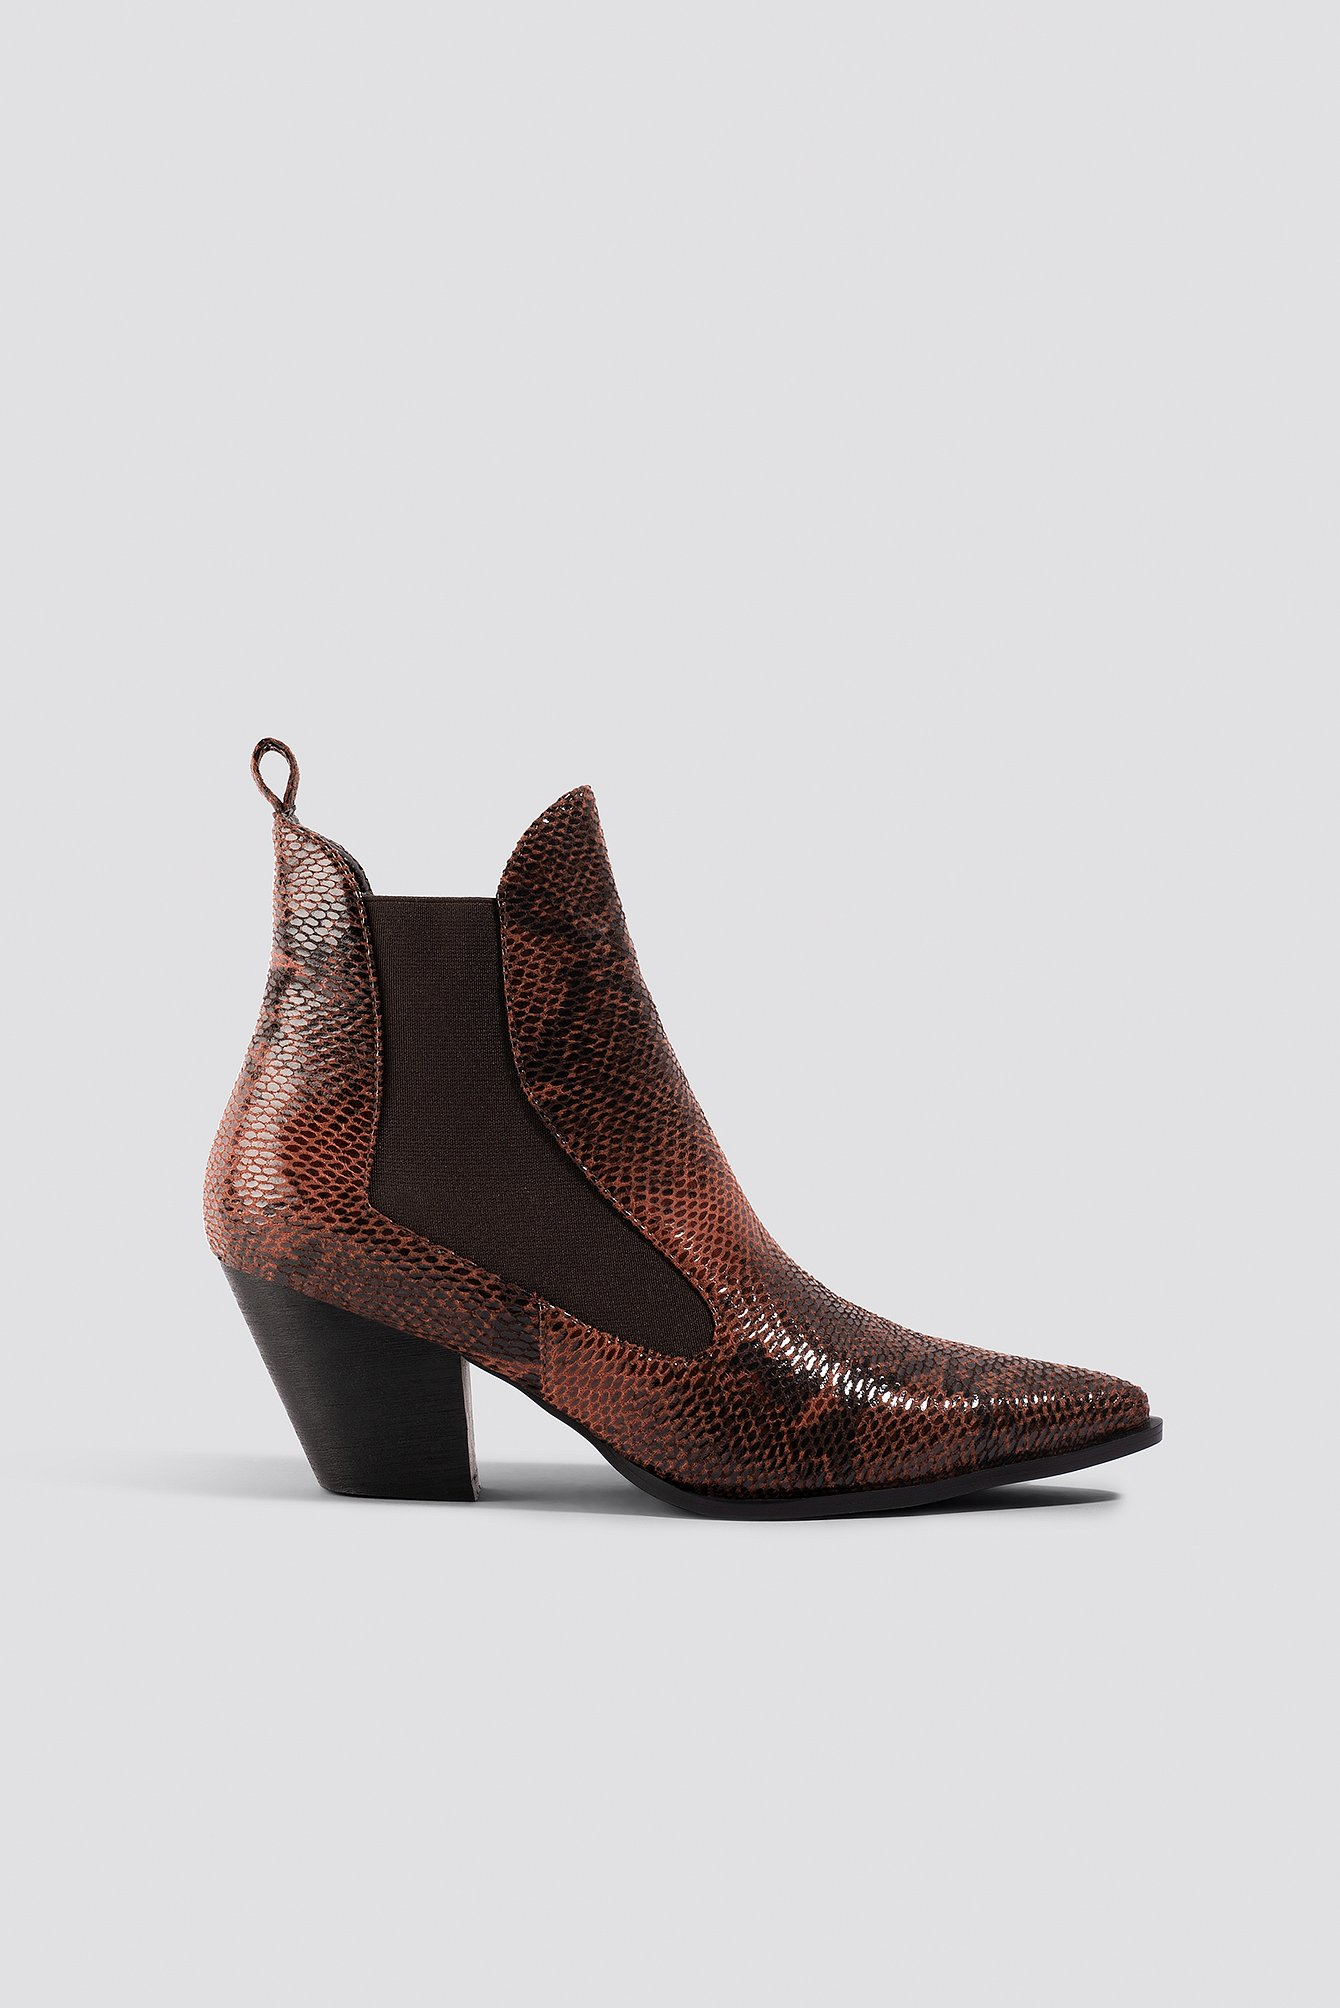 raid -  Flick Ankle Boot - Brown